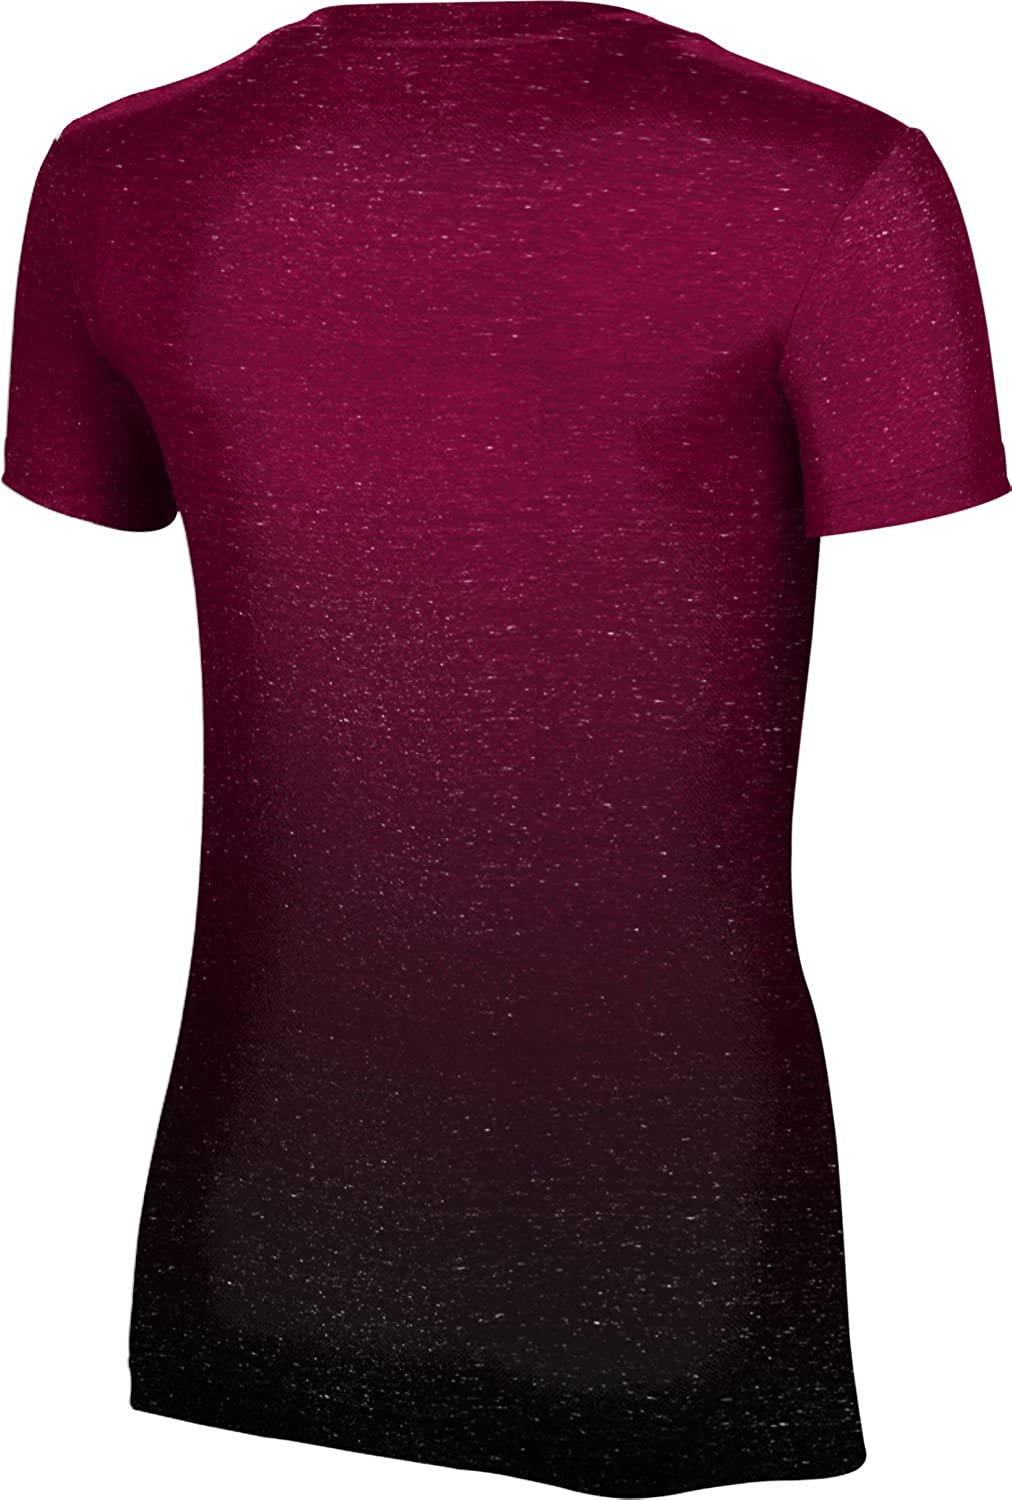 Ombre ProSphere Meredith College Girls Performance T-Shirt